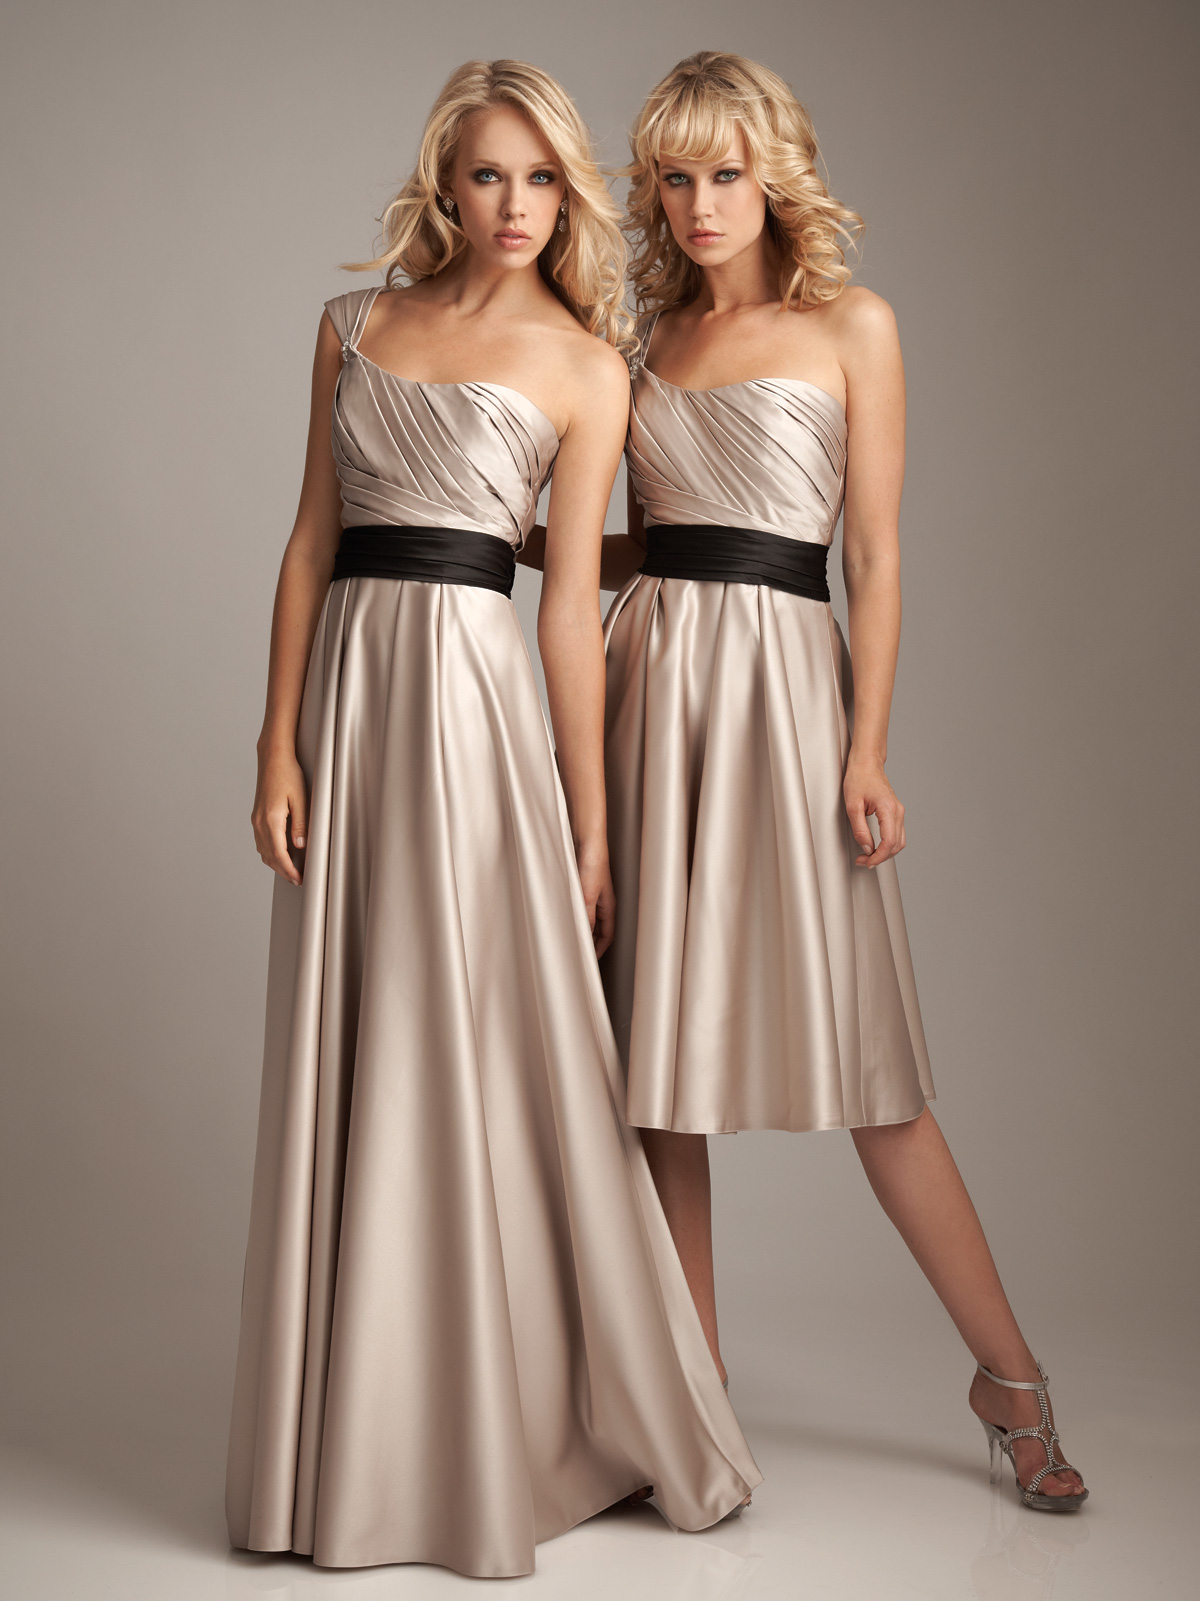 Ivory bridesmaid dresses.